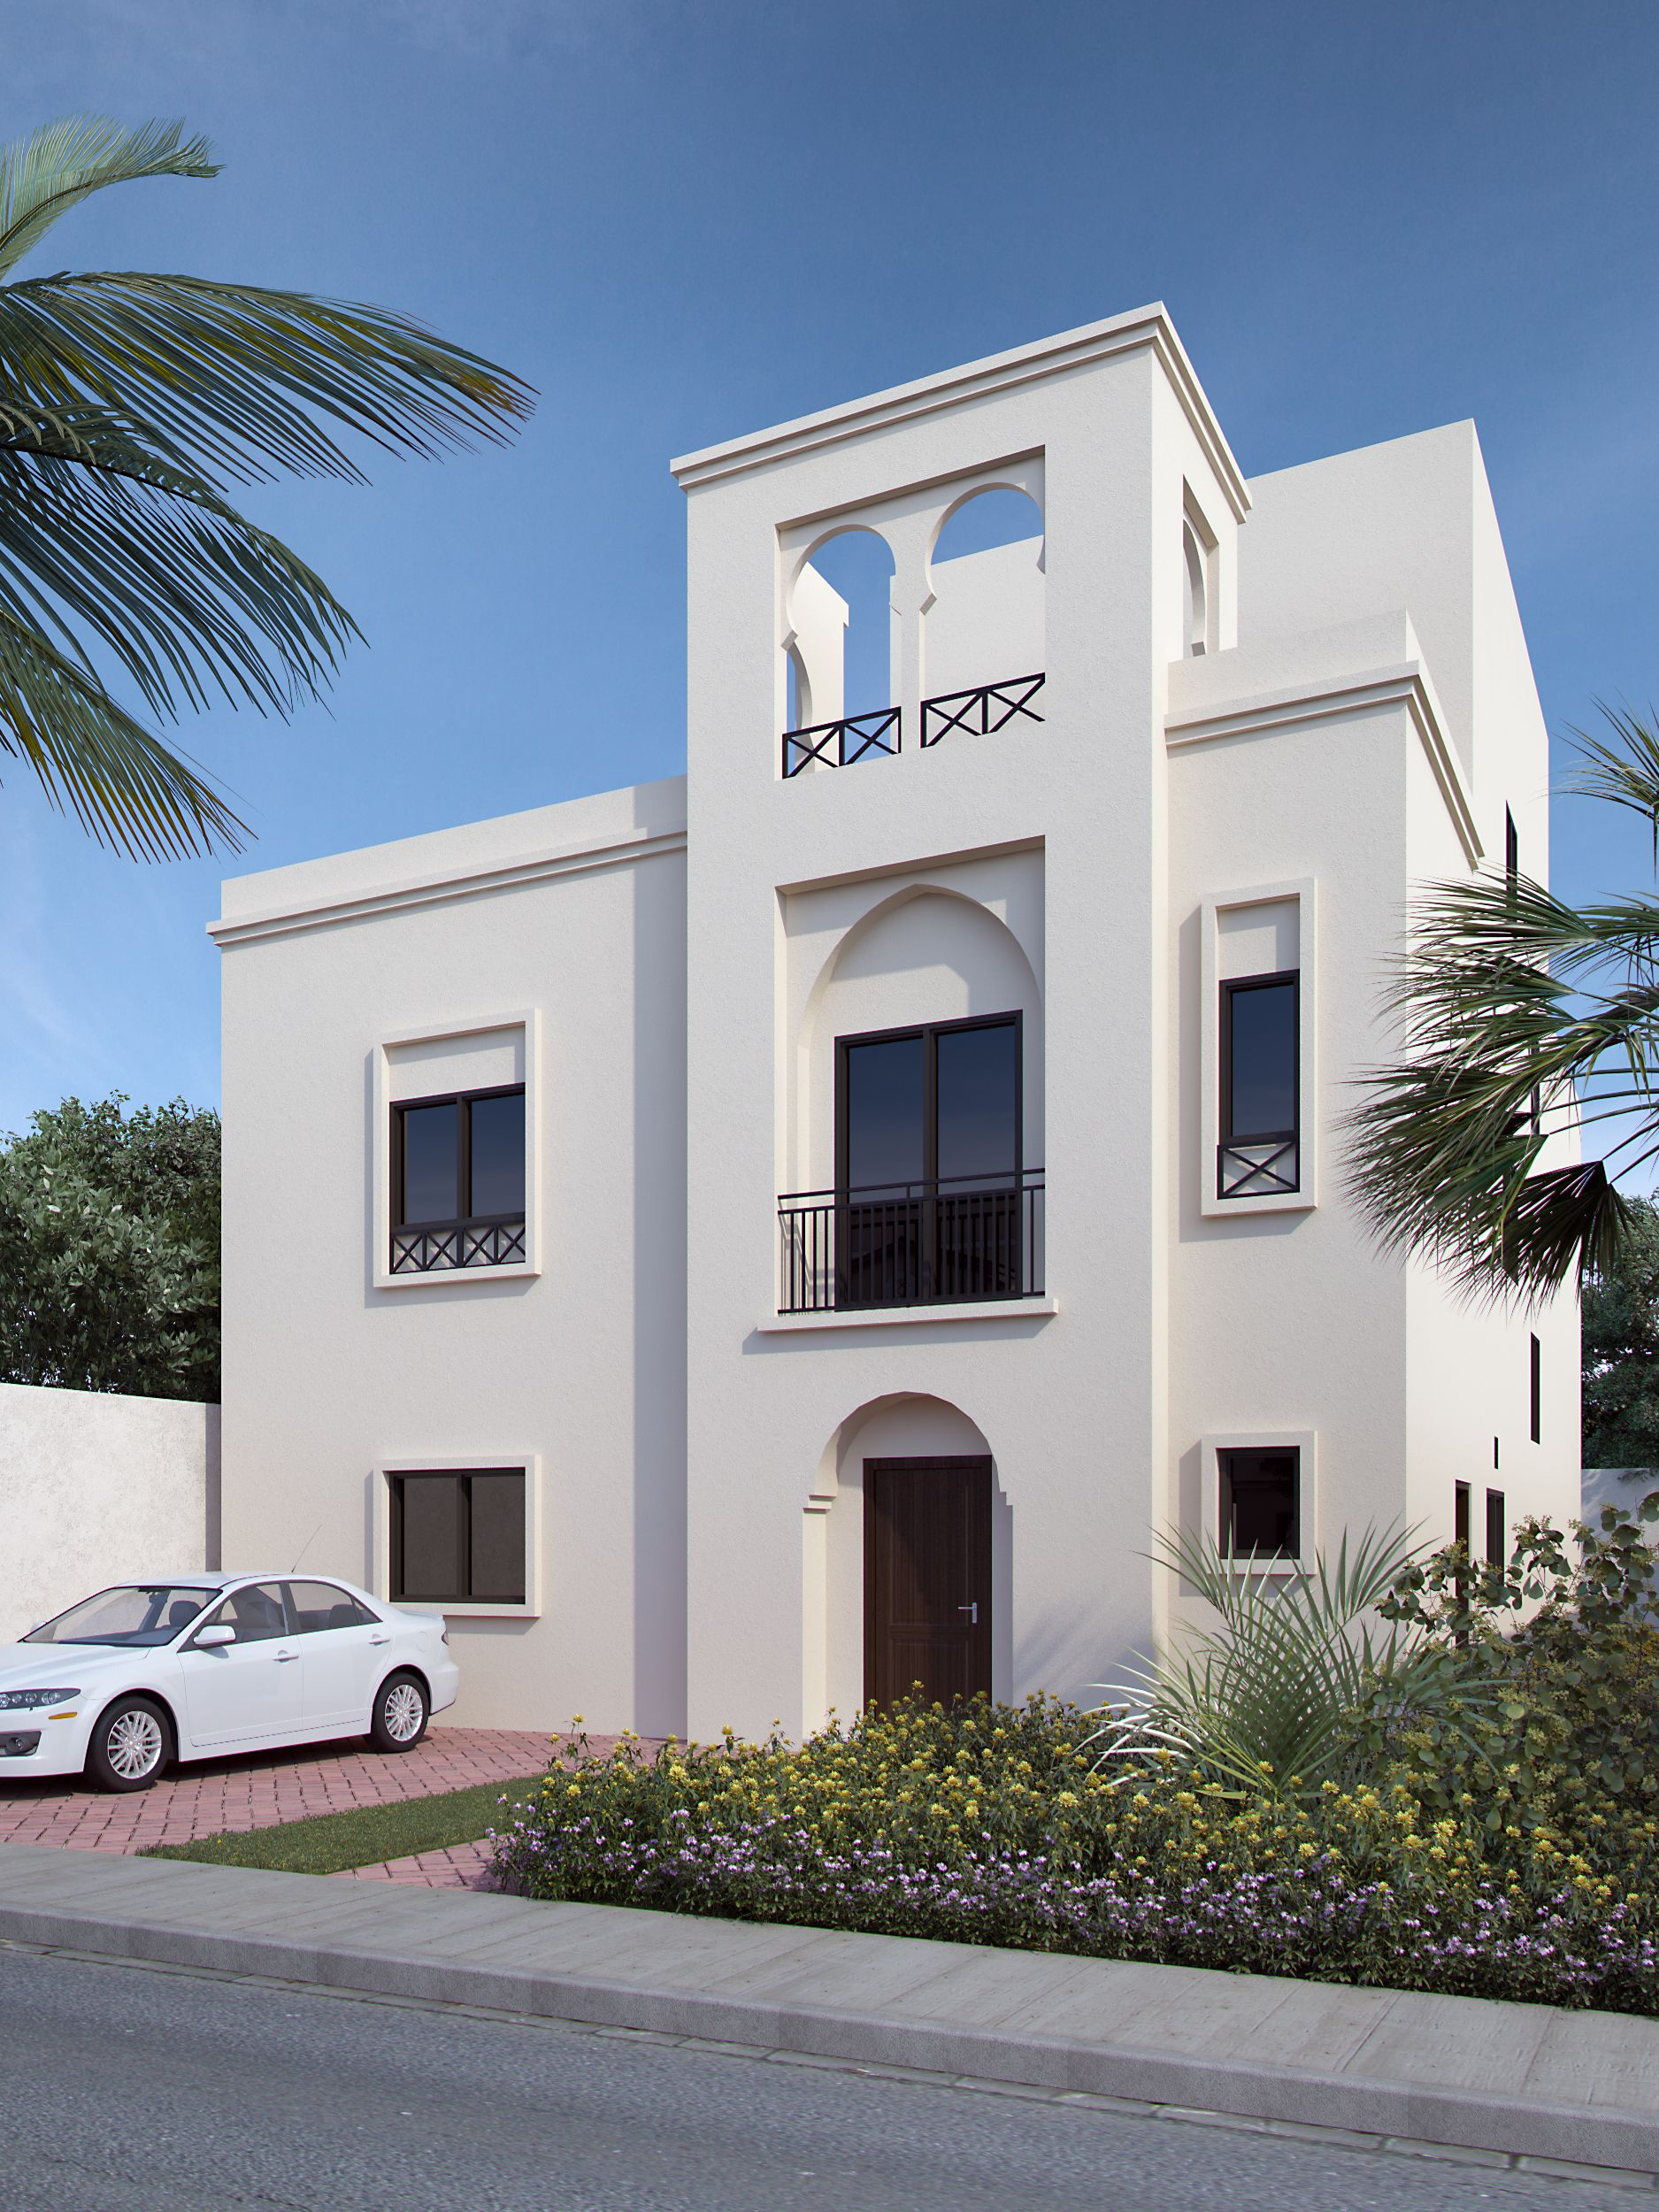 Proposed 3d Photo Rendering Of Arabic Style Villa Architectural House Plans Facade House Villa Design